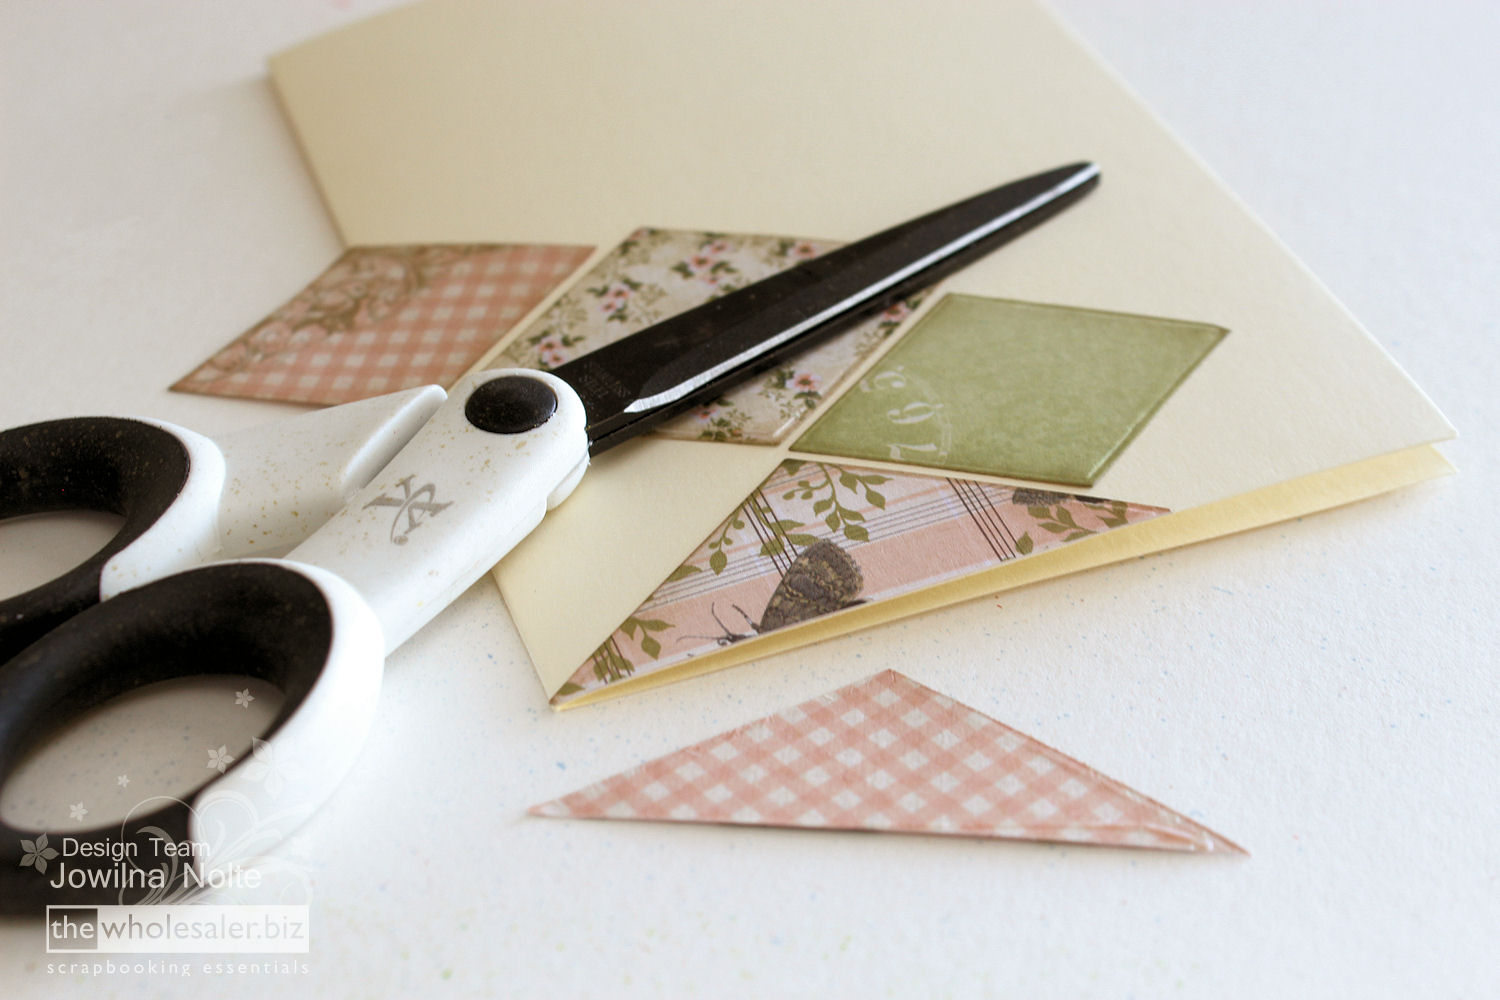 Couture Creations Card Sets - Step 6